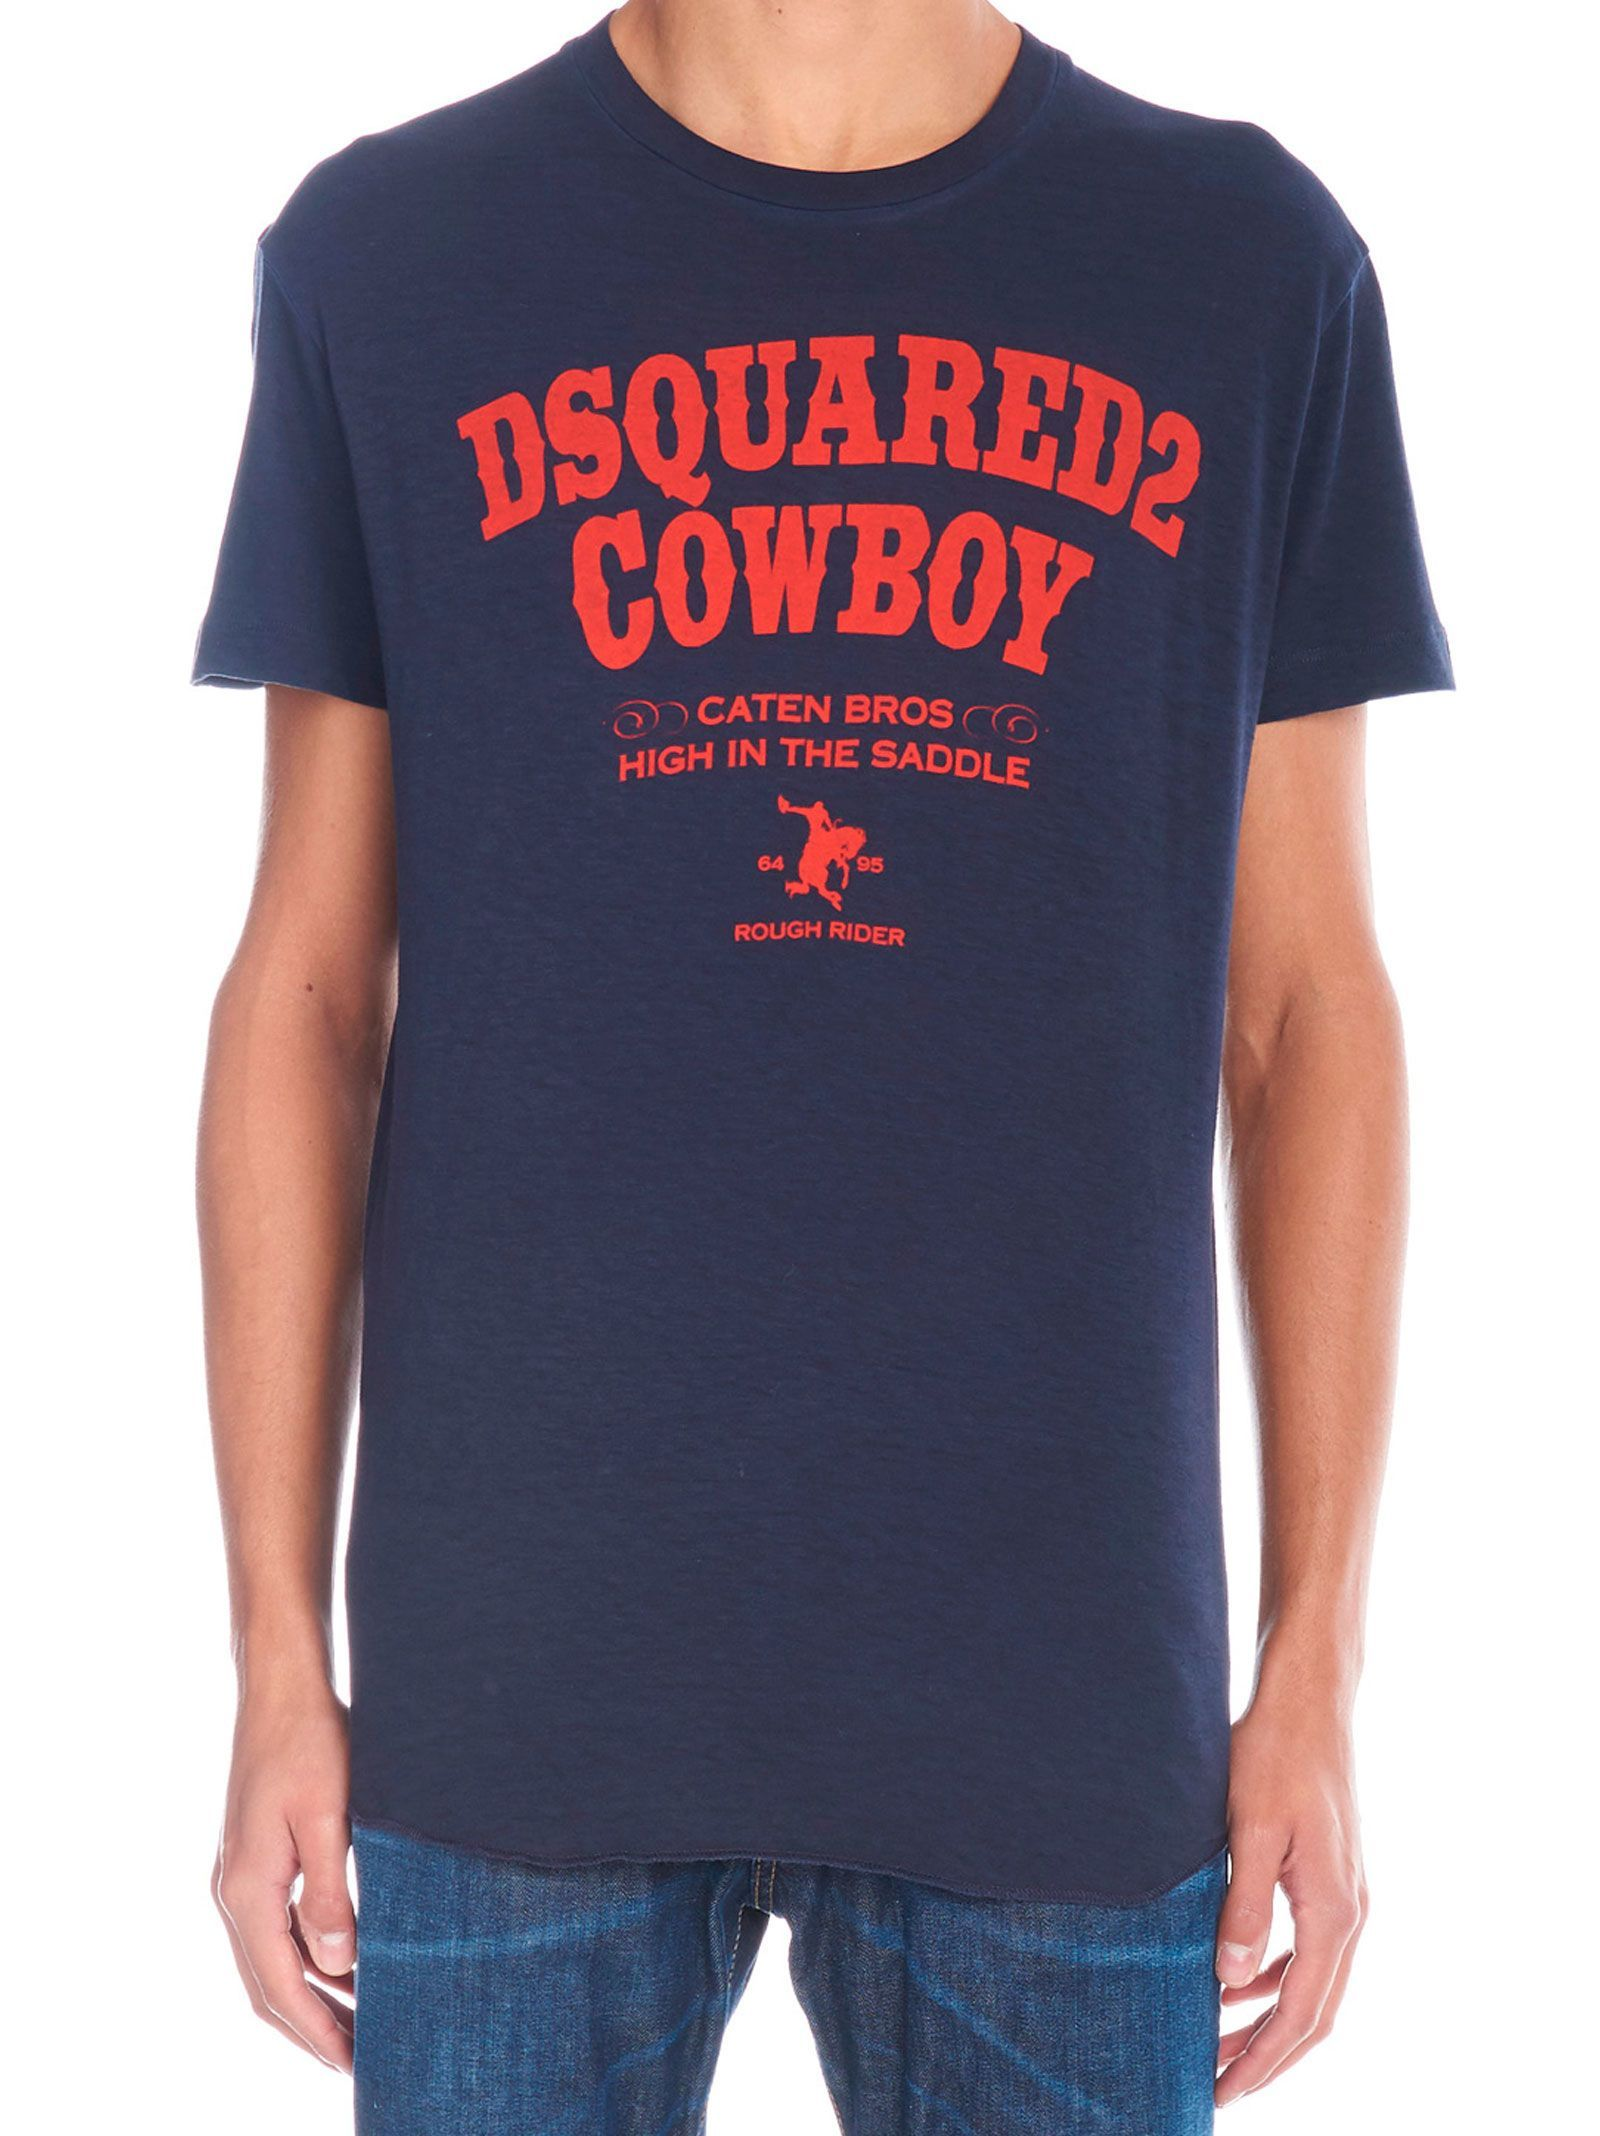 bdec0684d23601 DSQUARED2 'DSQUARED2 COWBOY' T-SHIRT. #dsquared2 #cloth | Dsquared2 ...